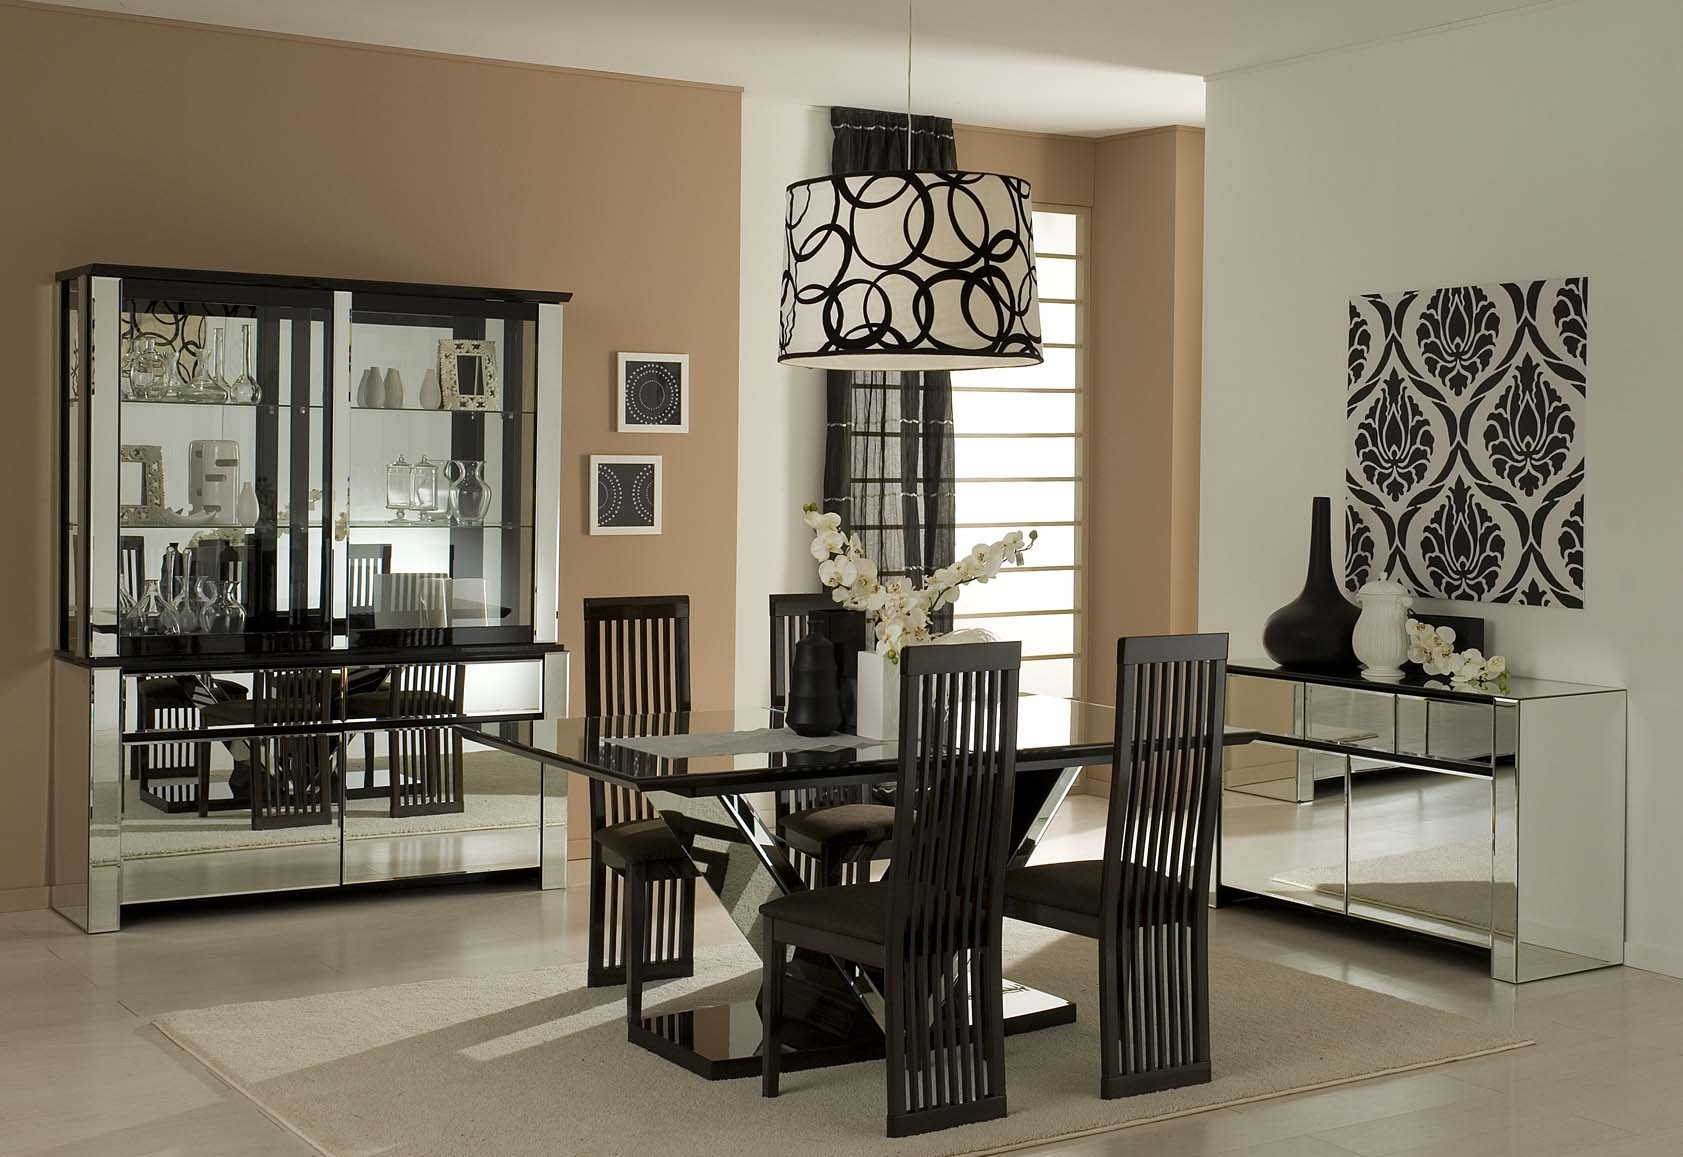 Decorating ideas dining room - Decorating Ideas Dining Room